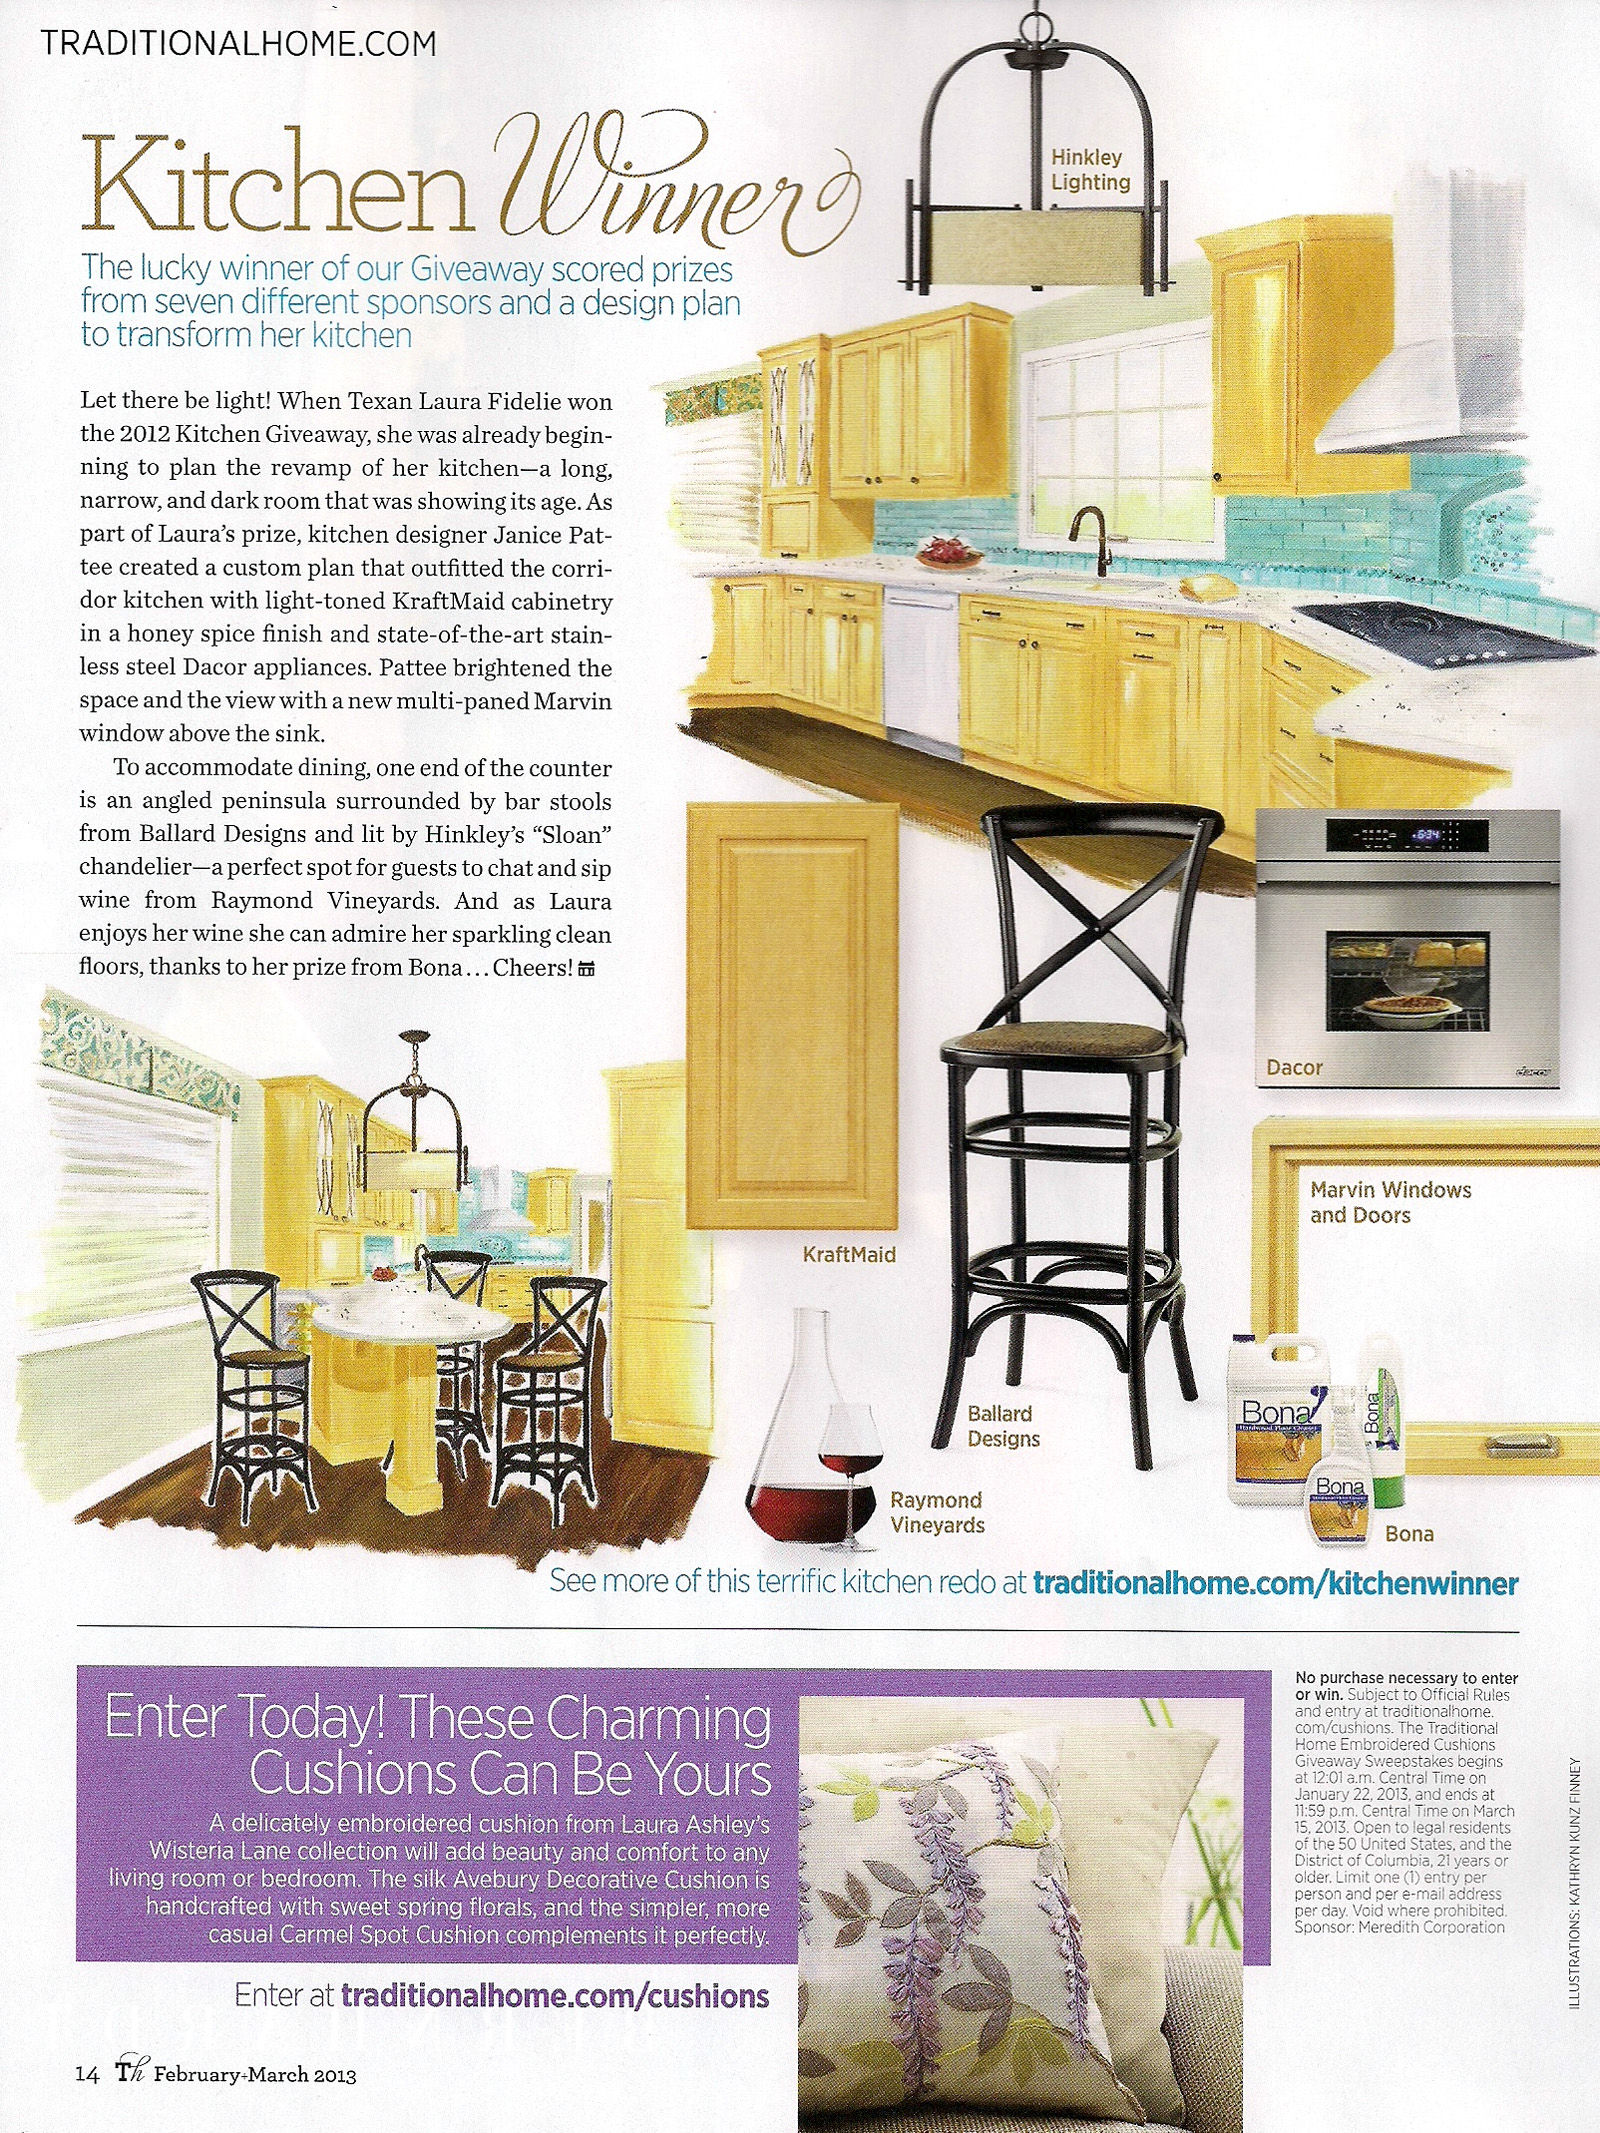 profile kitchen and bath design Traditional Home Magazine Kitchen Winner